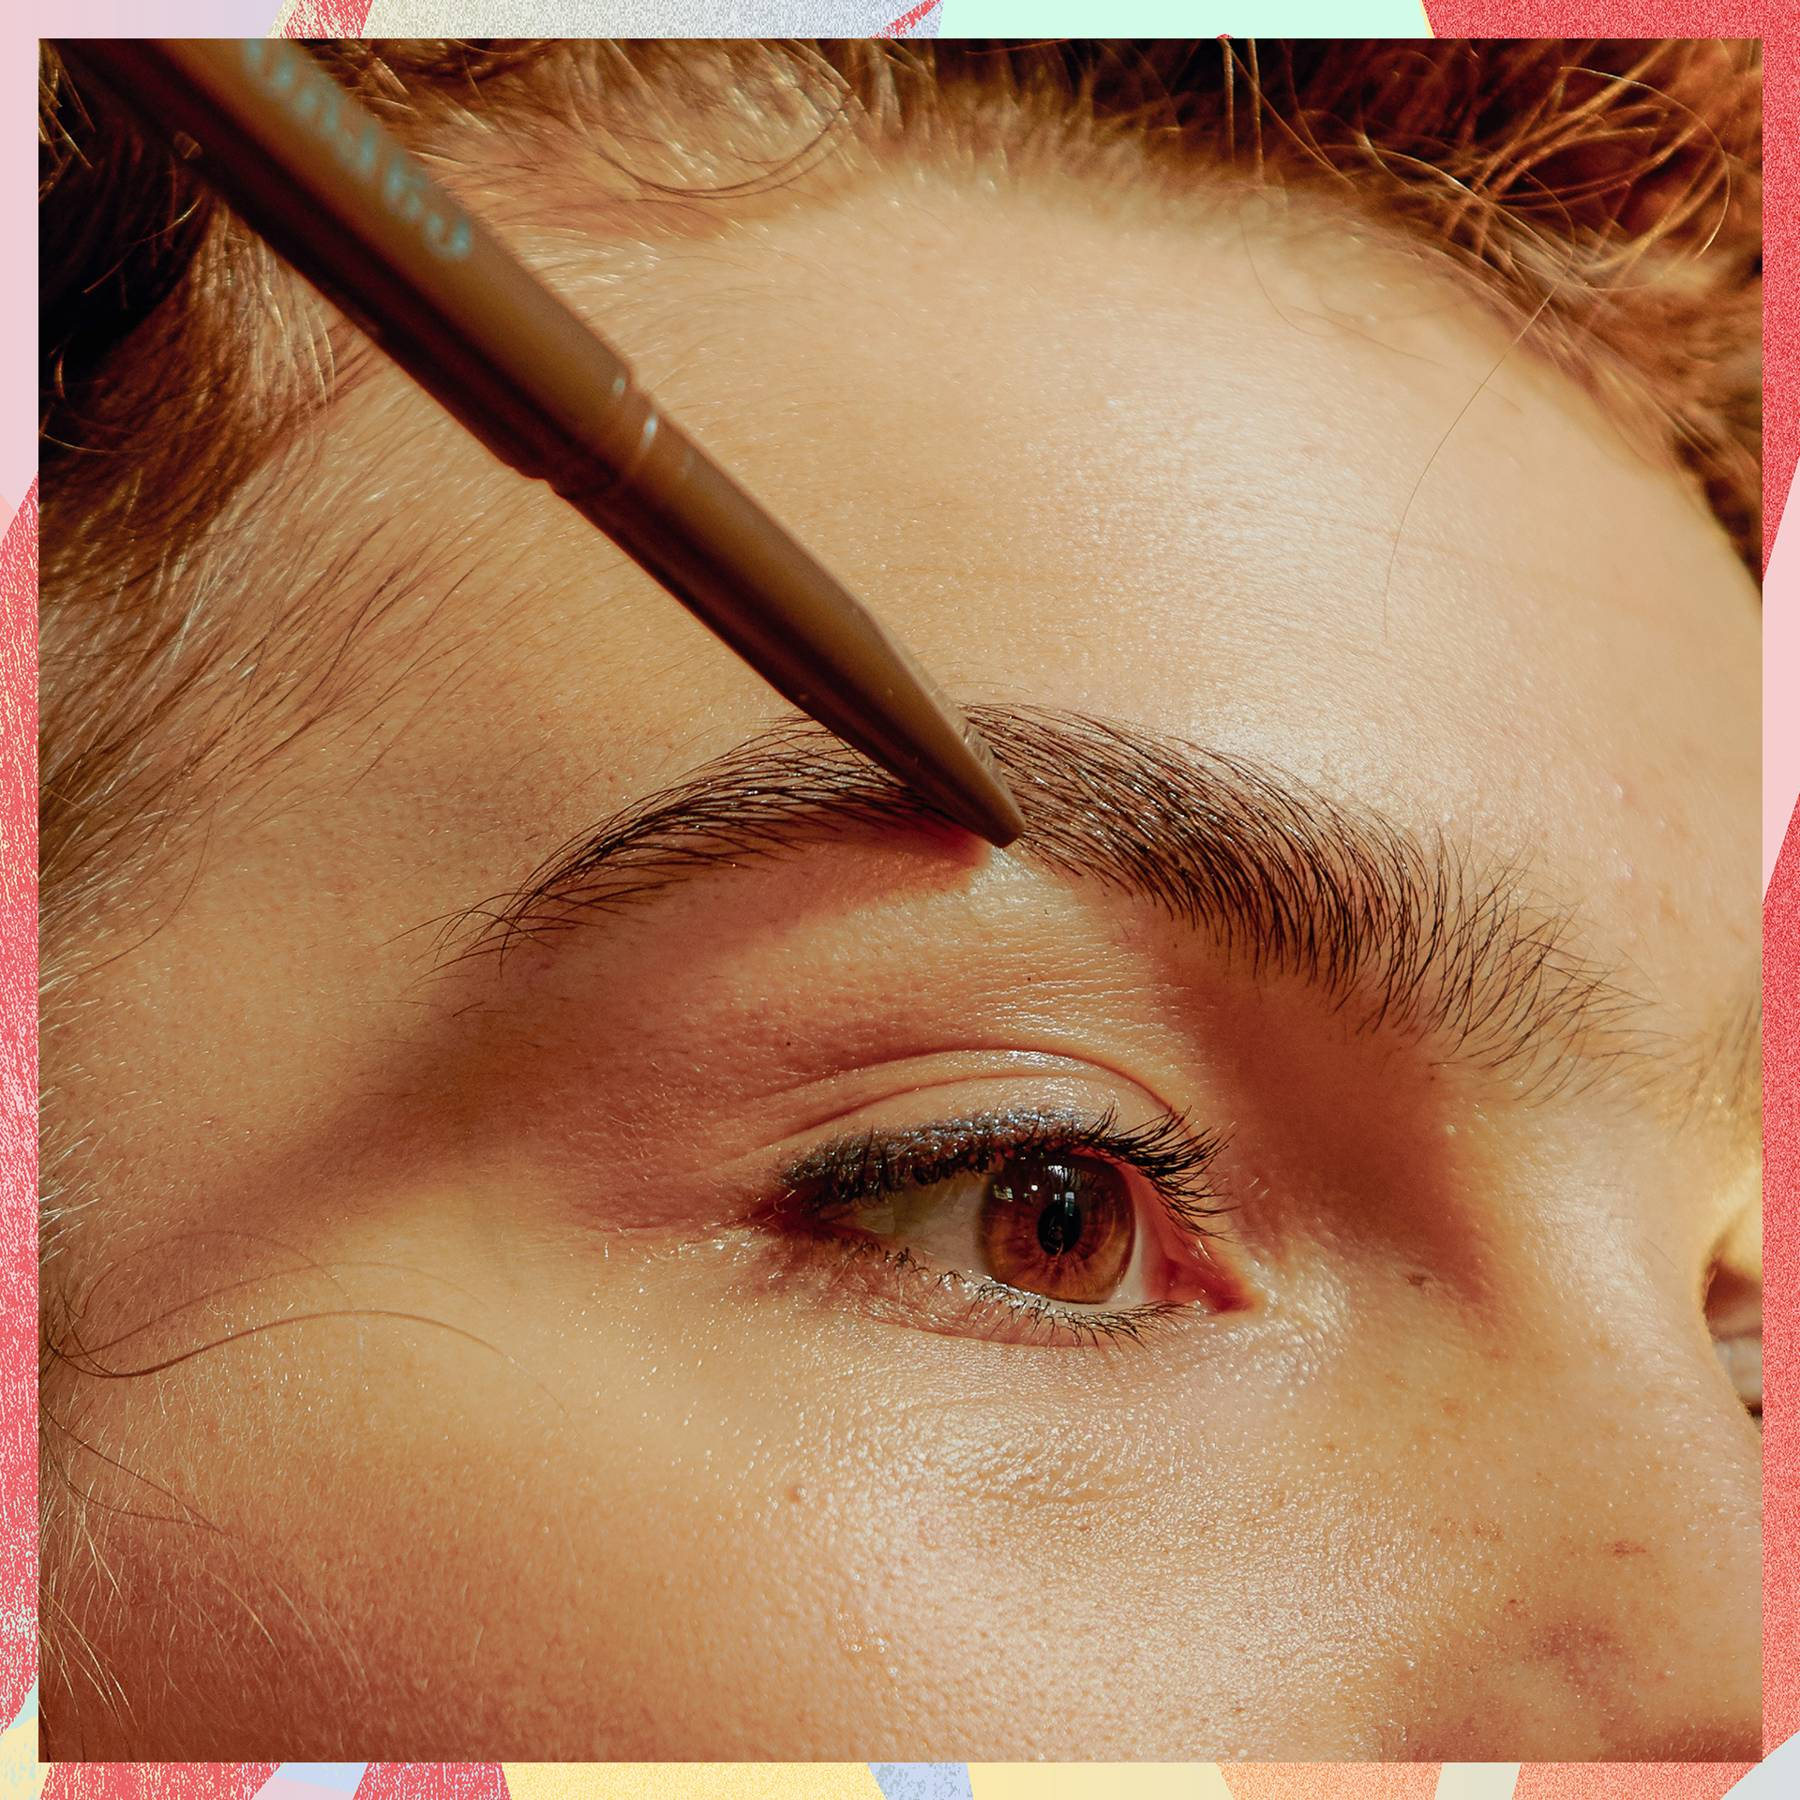 I've been a beauty editor for six years and here are the best eyebrow hacks I've heard